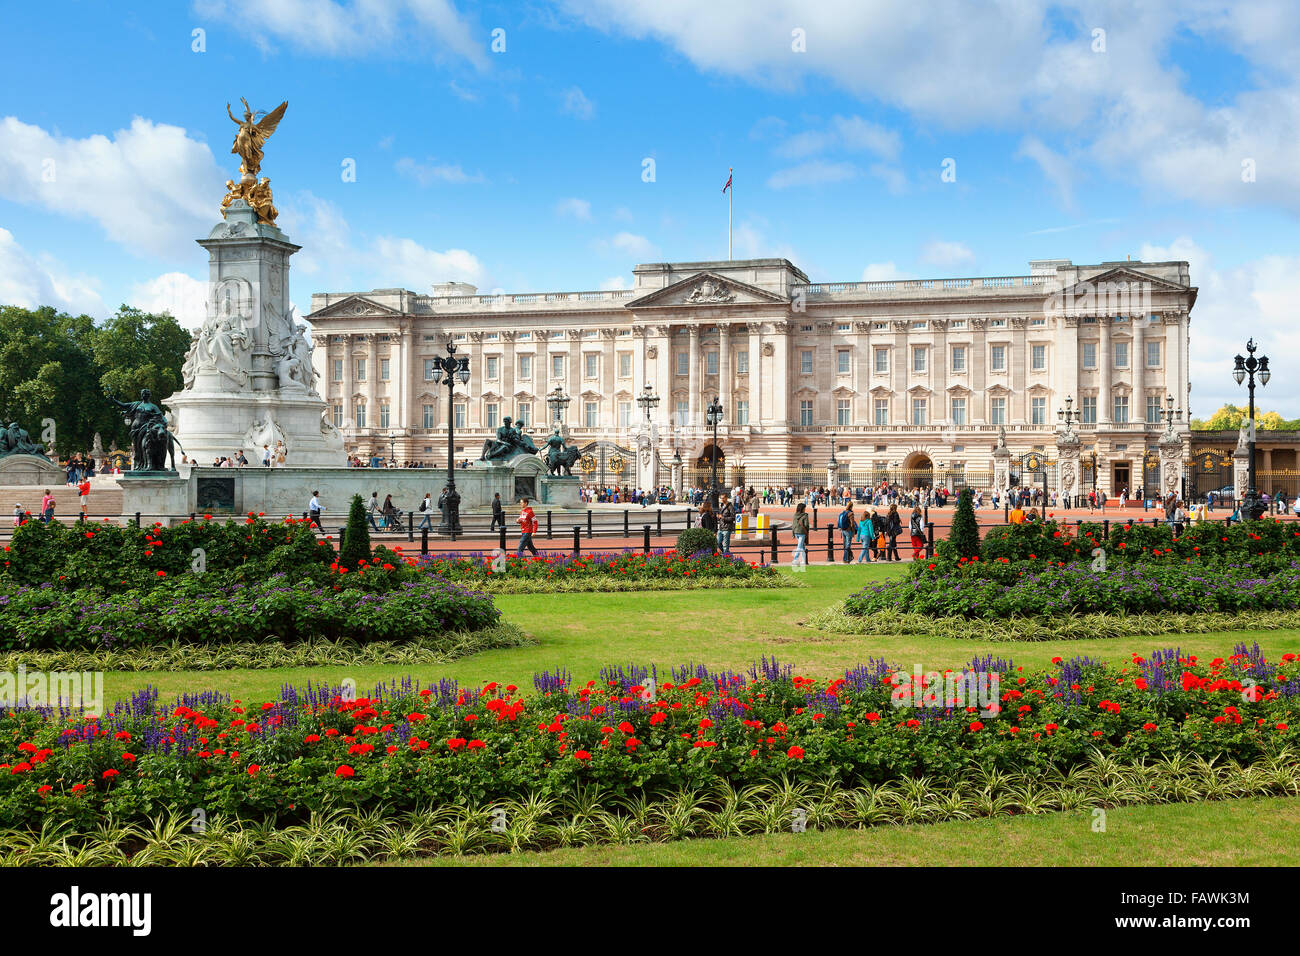 London, Buckingham Palace - Stock Image